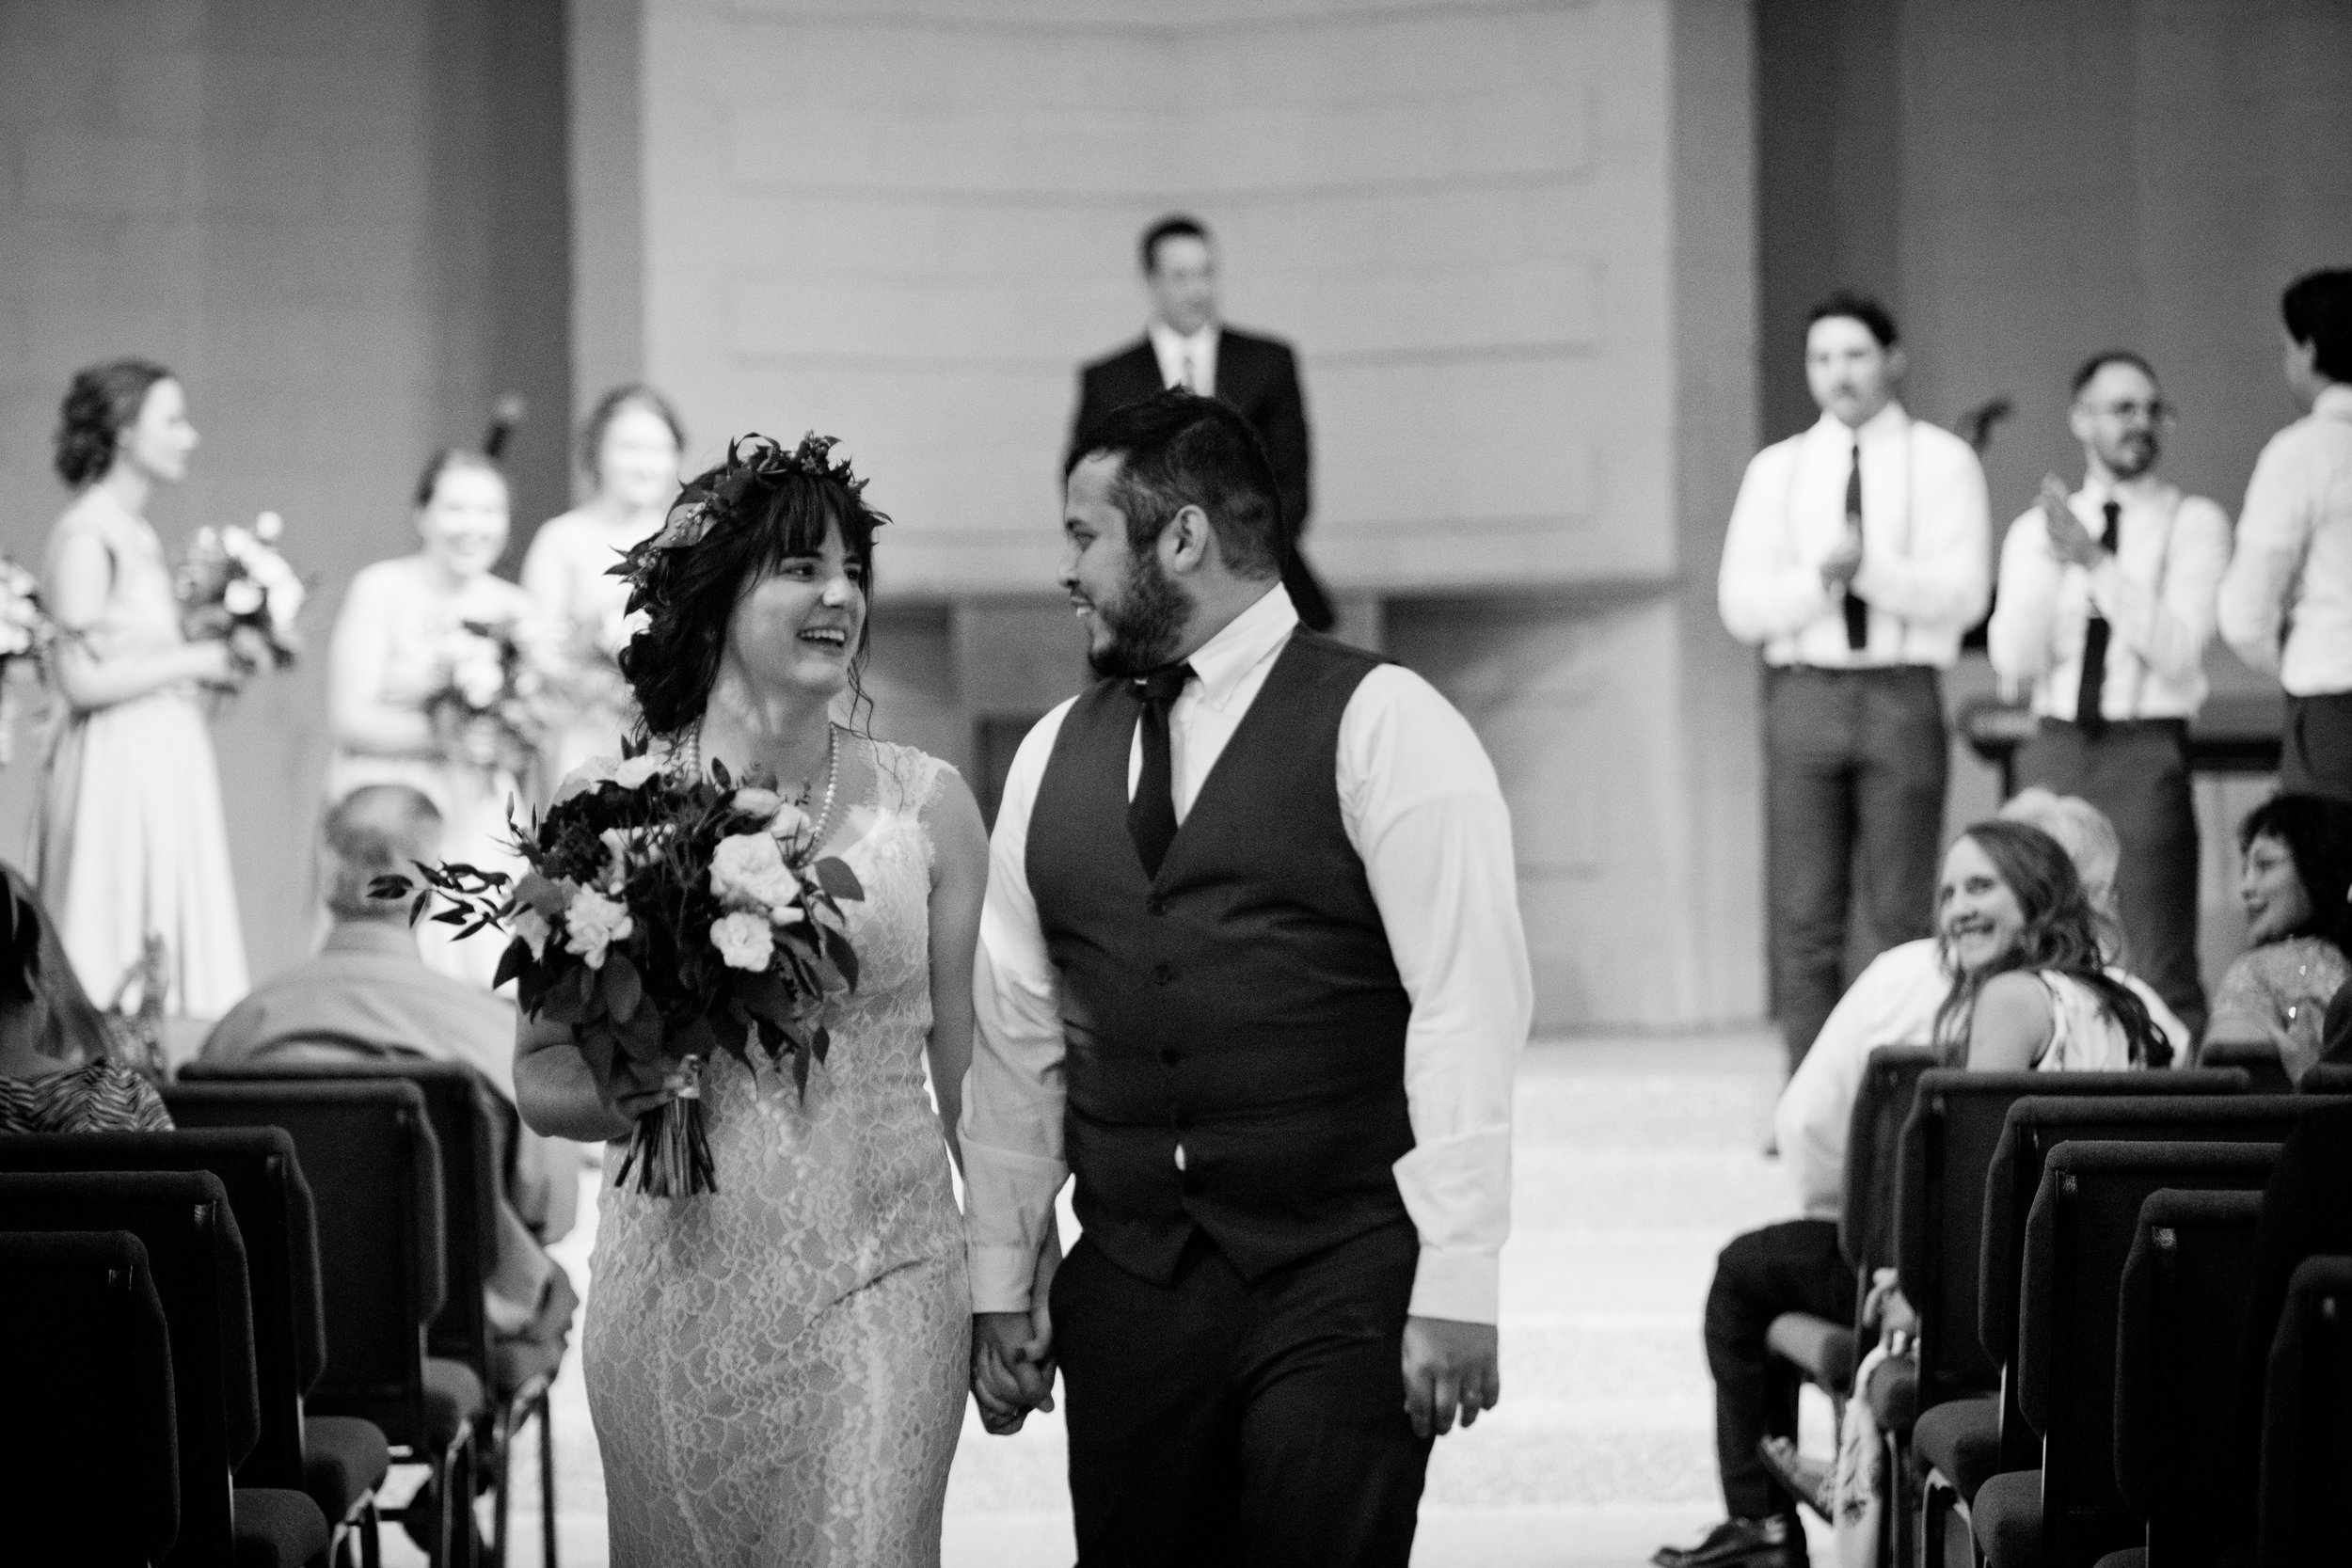 walking down the aisle after ceremony together